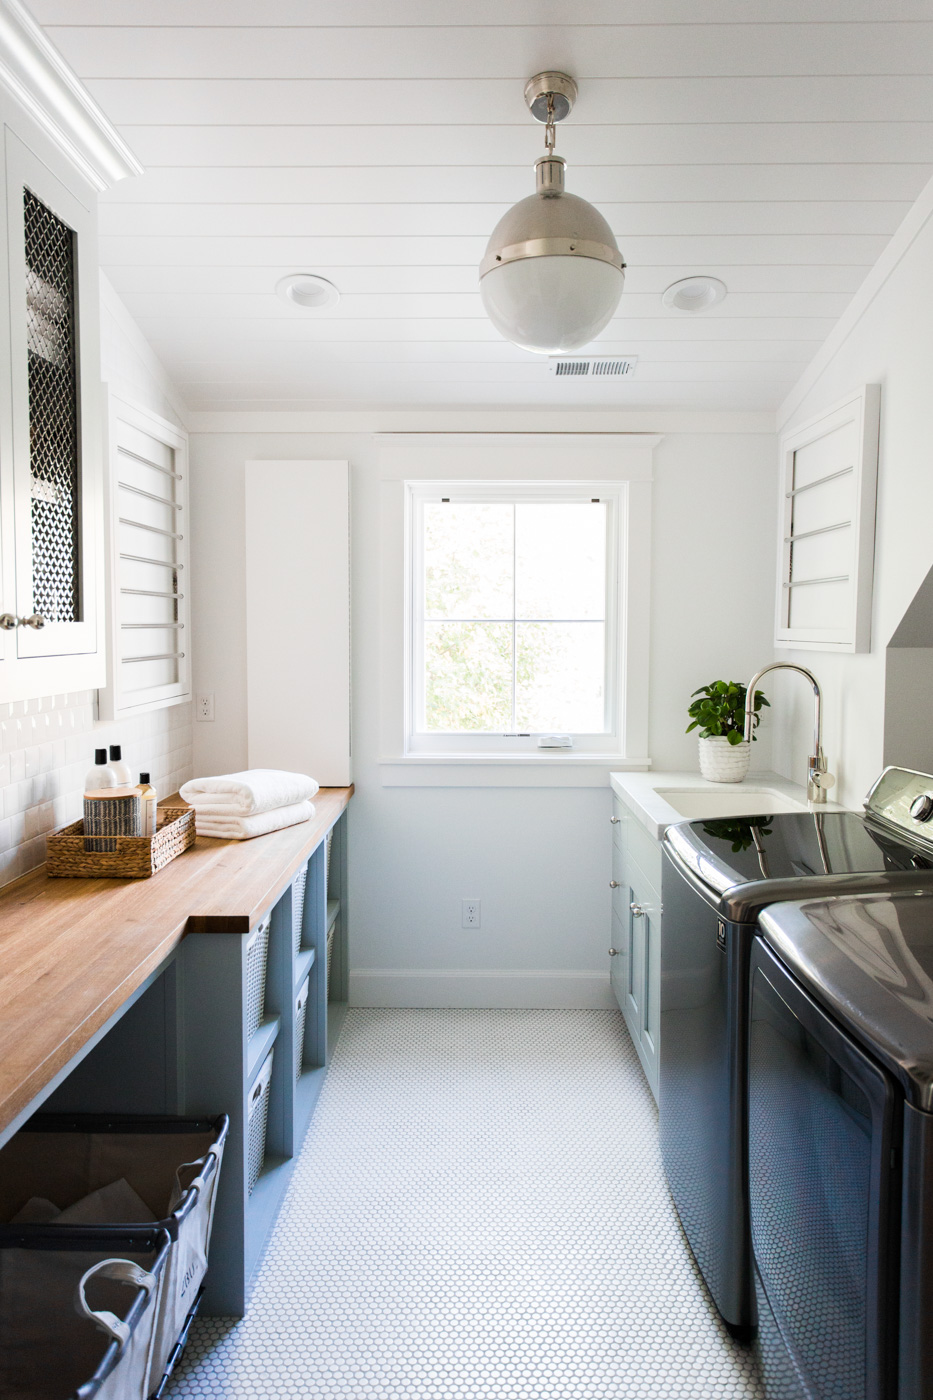 Green+cabinets+with+butcher+blog,+white+penny+tile+laundry+room+||+Studio+McGee.jpg